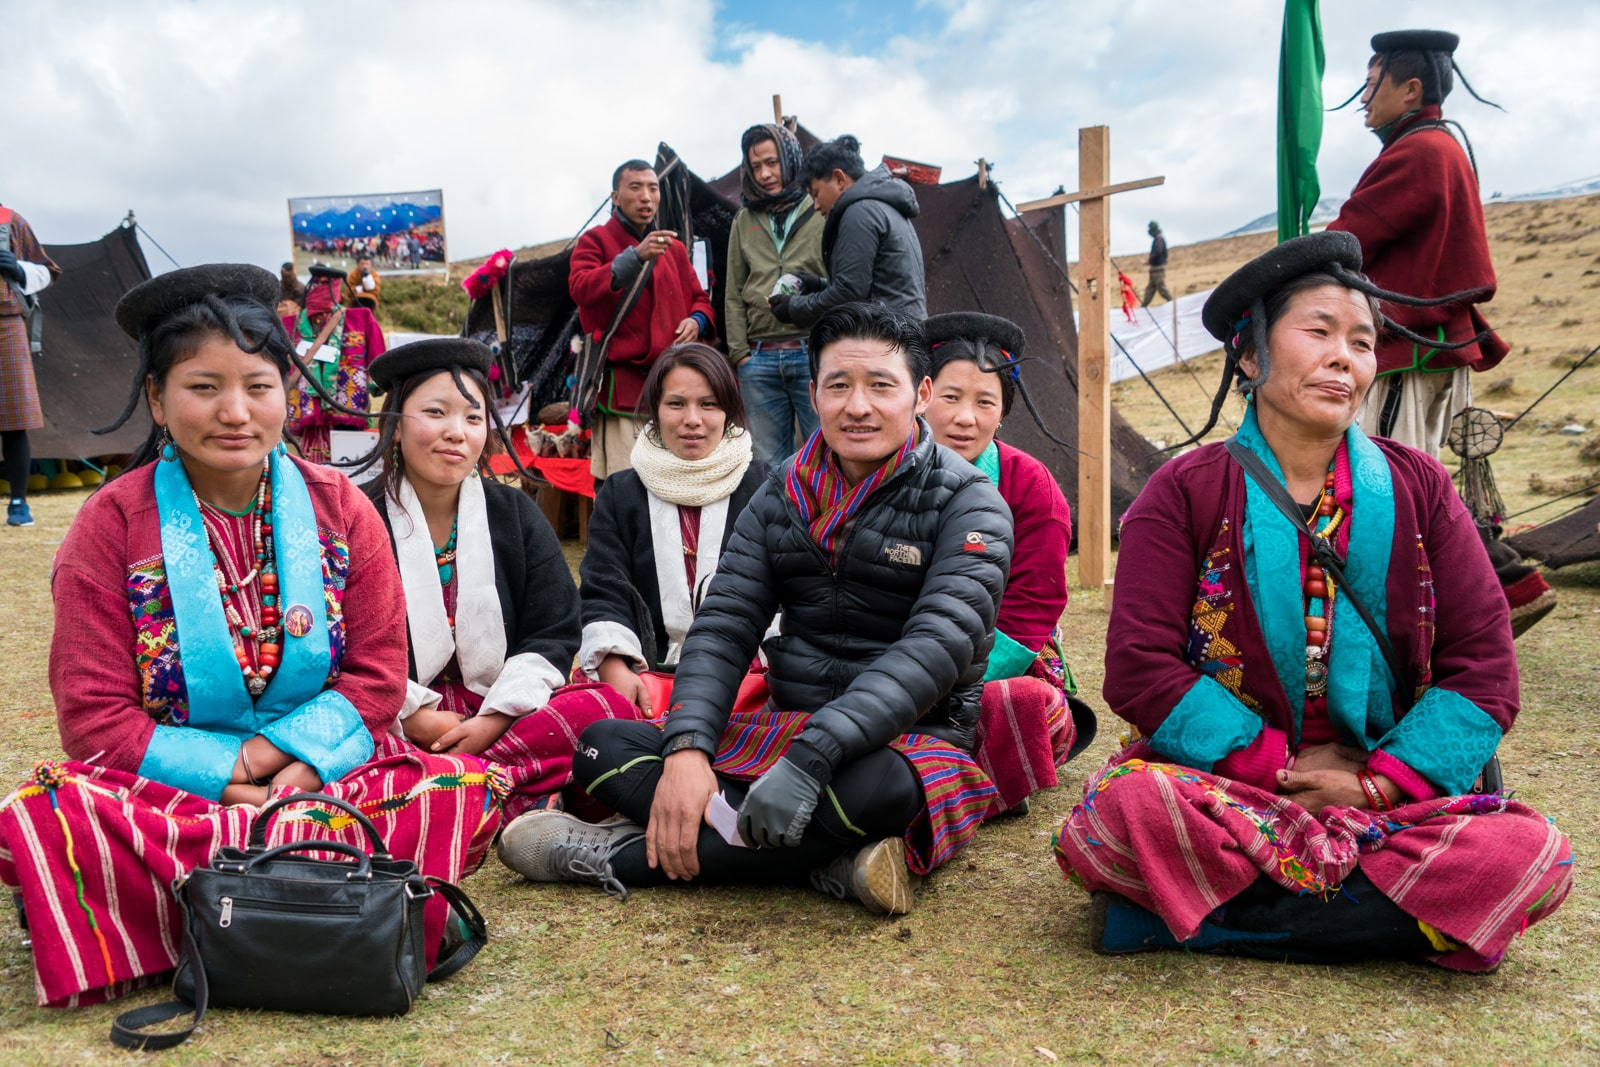 Photos of the Royal Highlander Festival in Laya, Bhutan - Family of Monpa people - Lost With Purpose travel blog